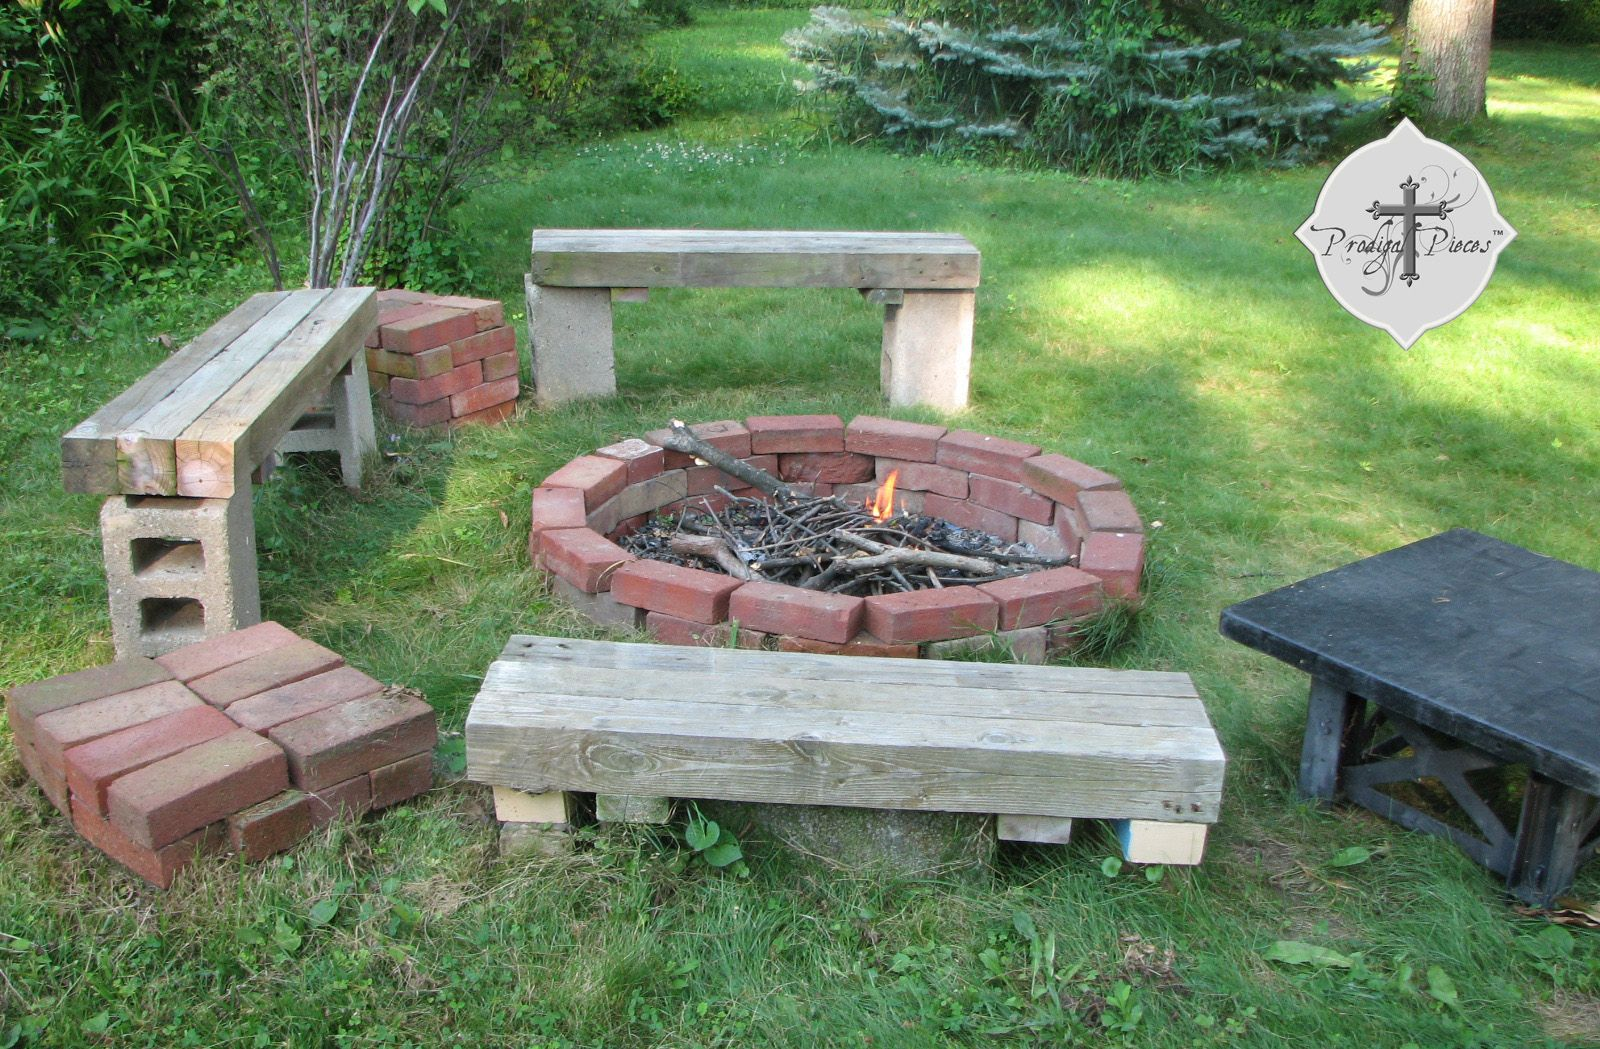 how to make your own fire pit - Google Search | Fire pit ...